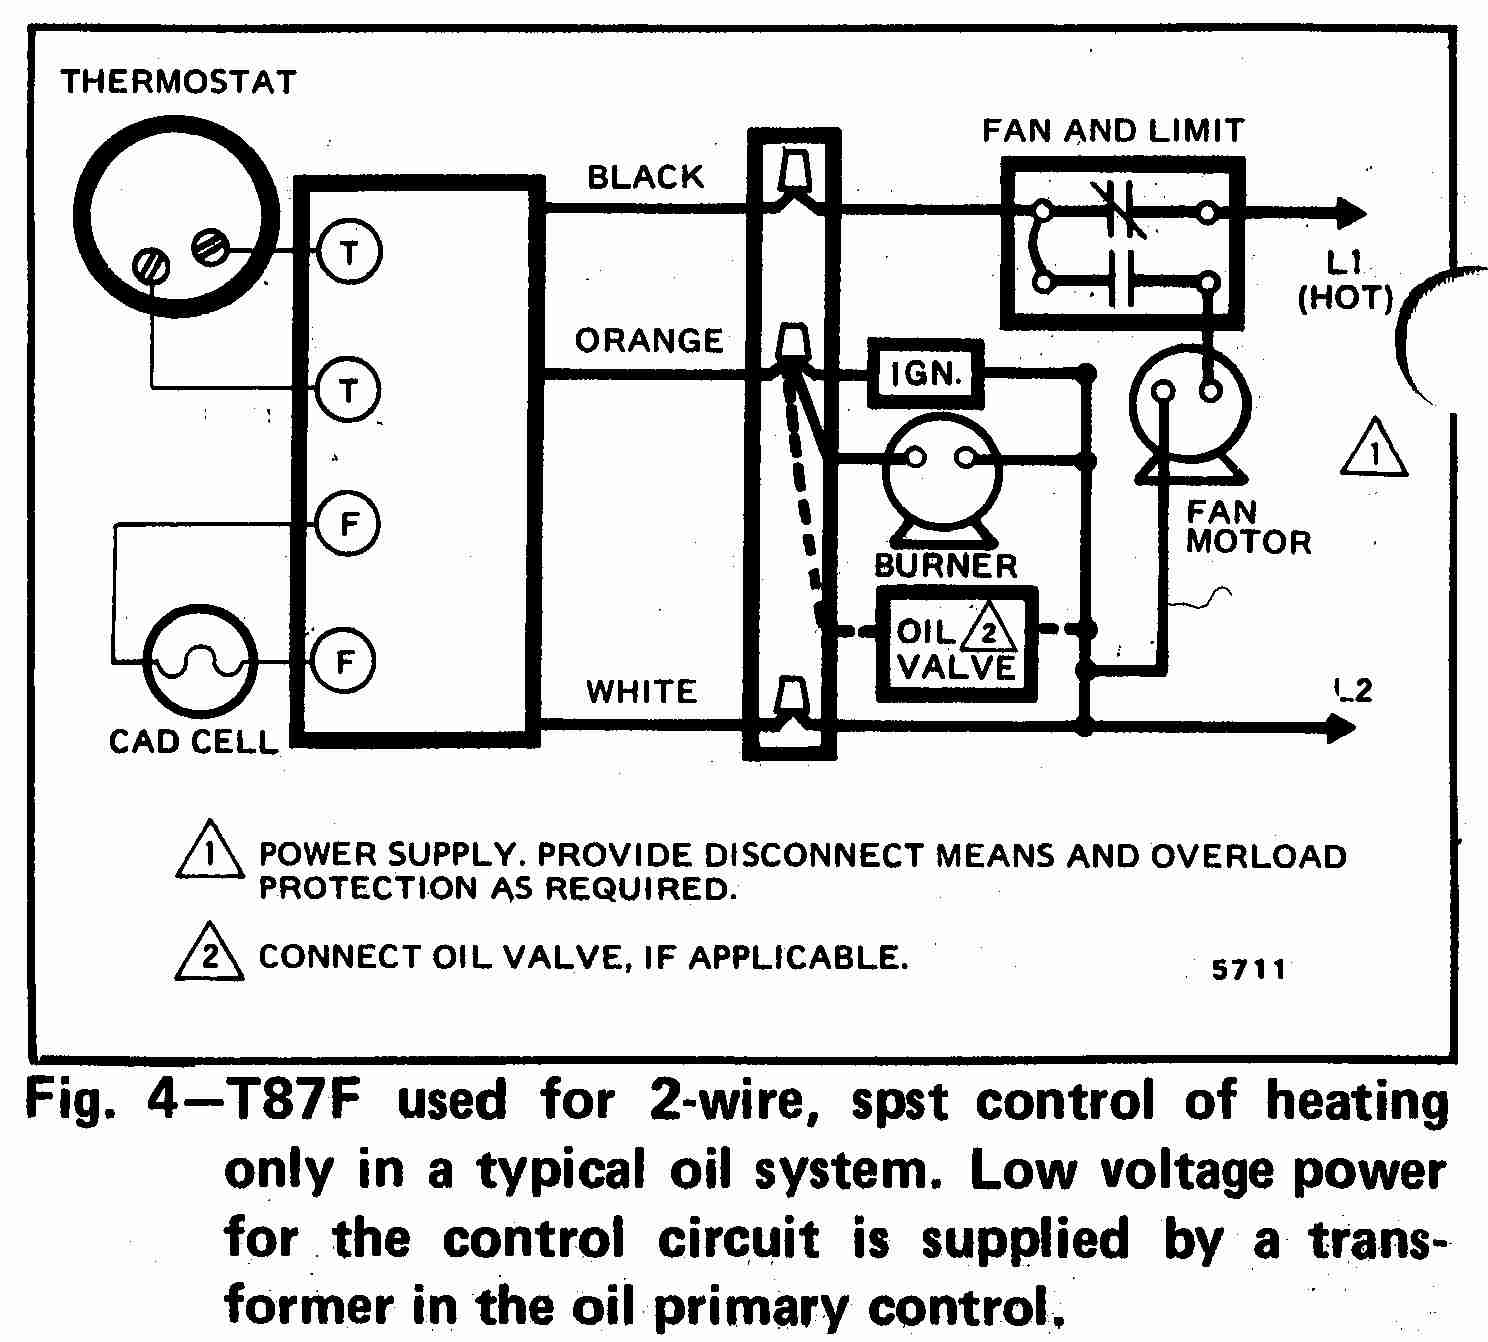 room thermostat wiring diagrams for hvac systems rh inspectapedia com wiring diagram thermostat heat pump wire diagram thermostat furnace